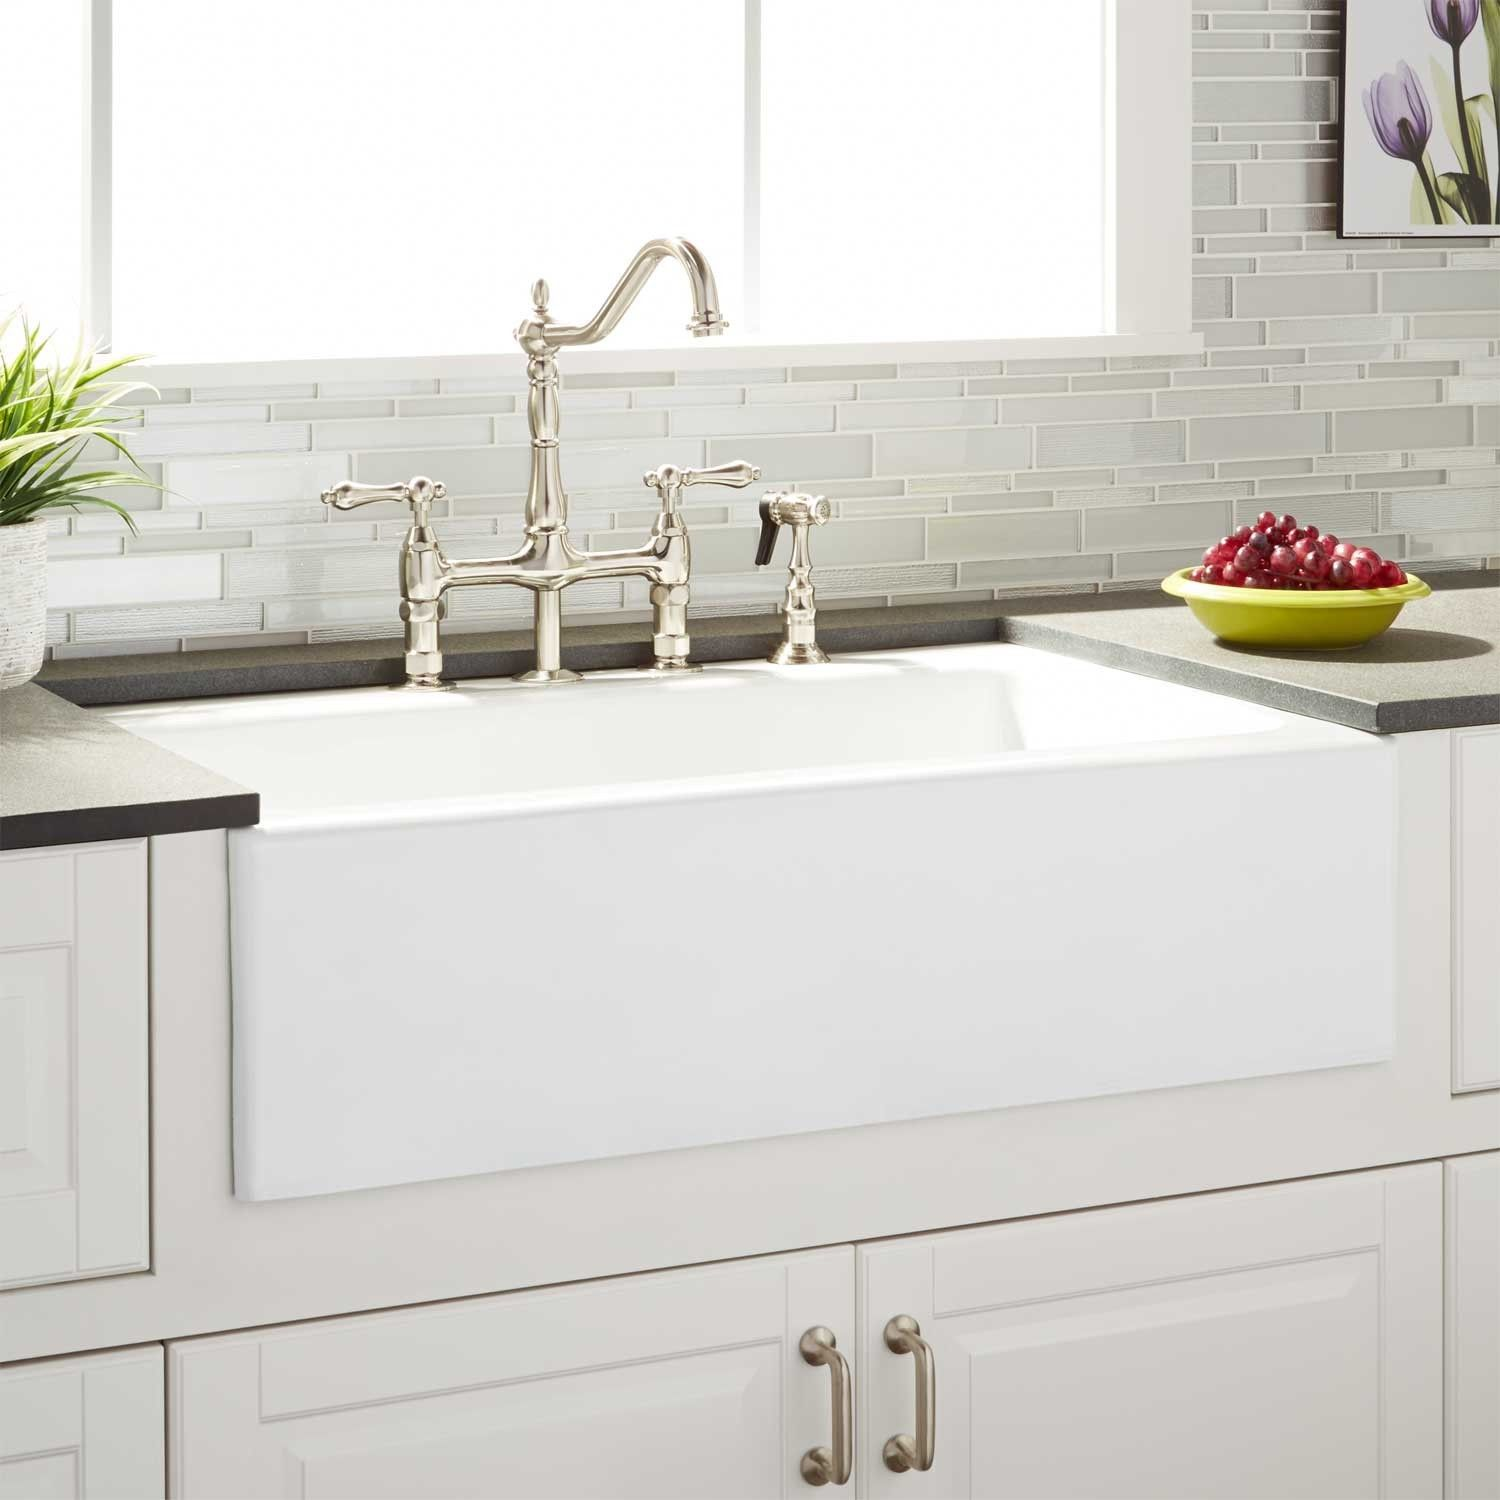 The 20 Best Ideas for Farmhouse Kitchen Sink Page 13 of